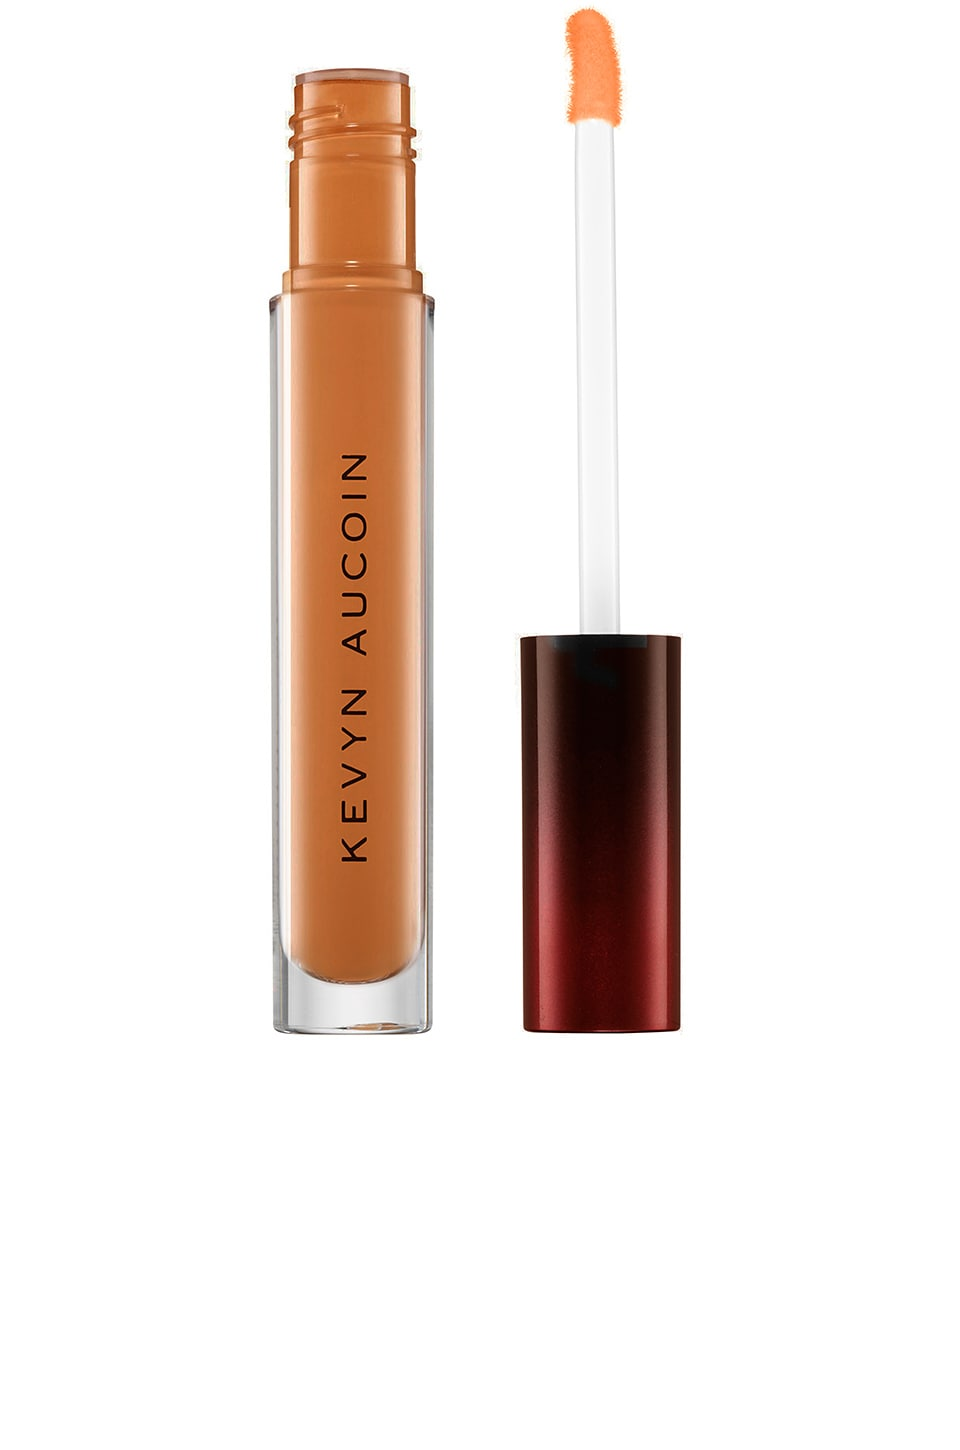 Kevyn Aucoin The Etherealist Super Natural Concealer in Deep 09